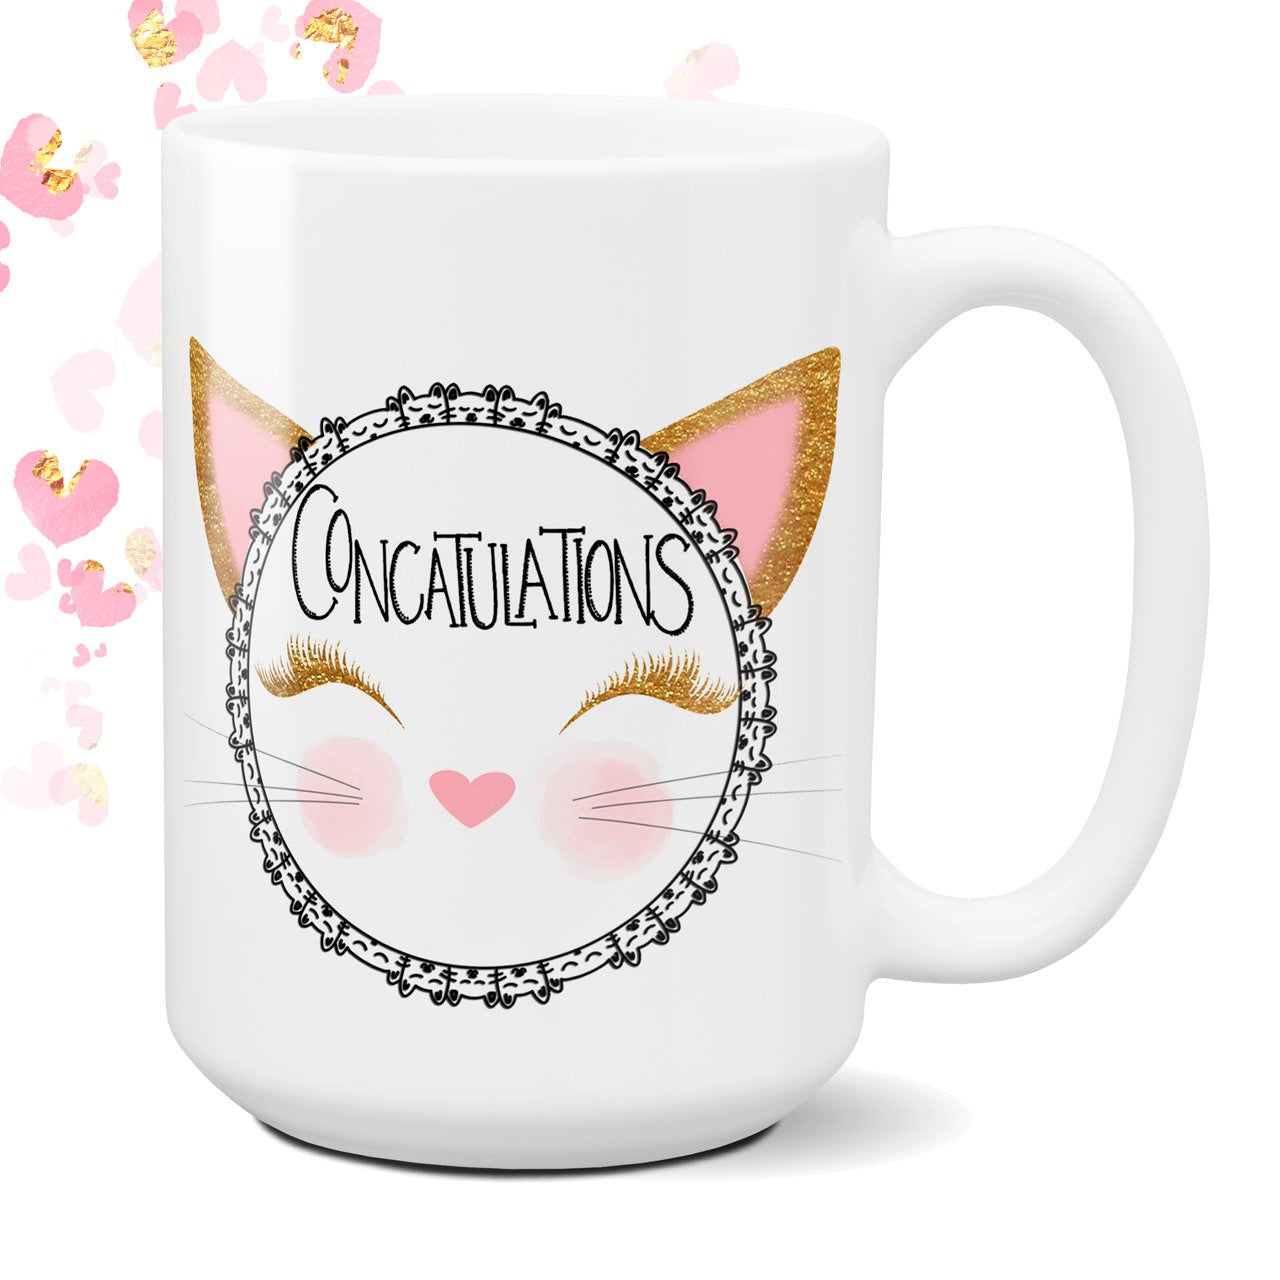 Concatulations Personalized Cat Theme Coffee Cup Birthday Gift Congratulations Graduation Gift